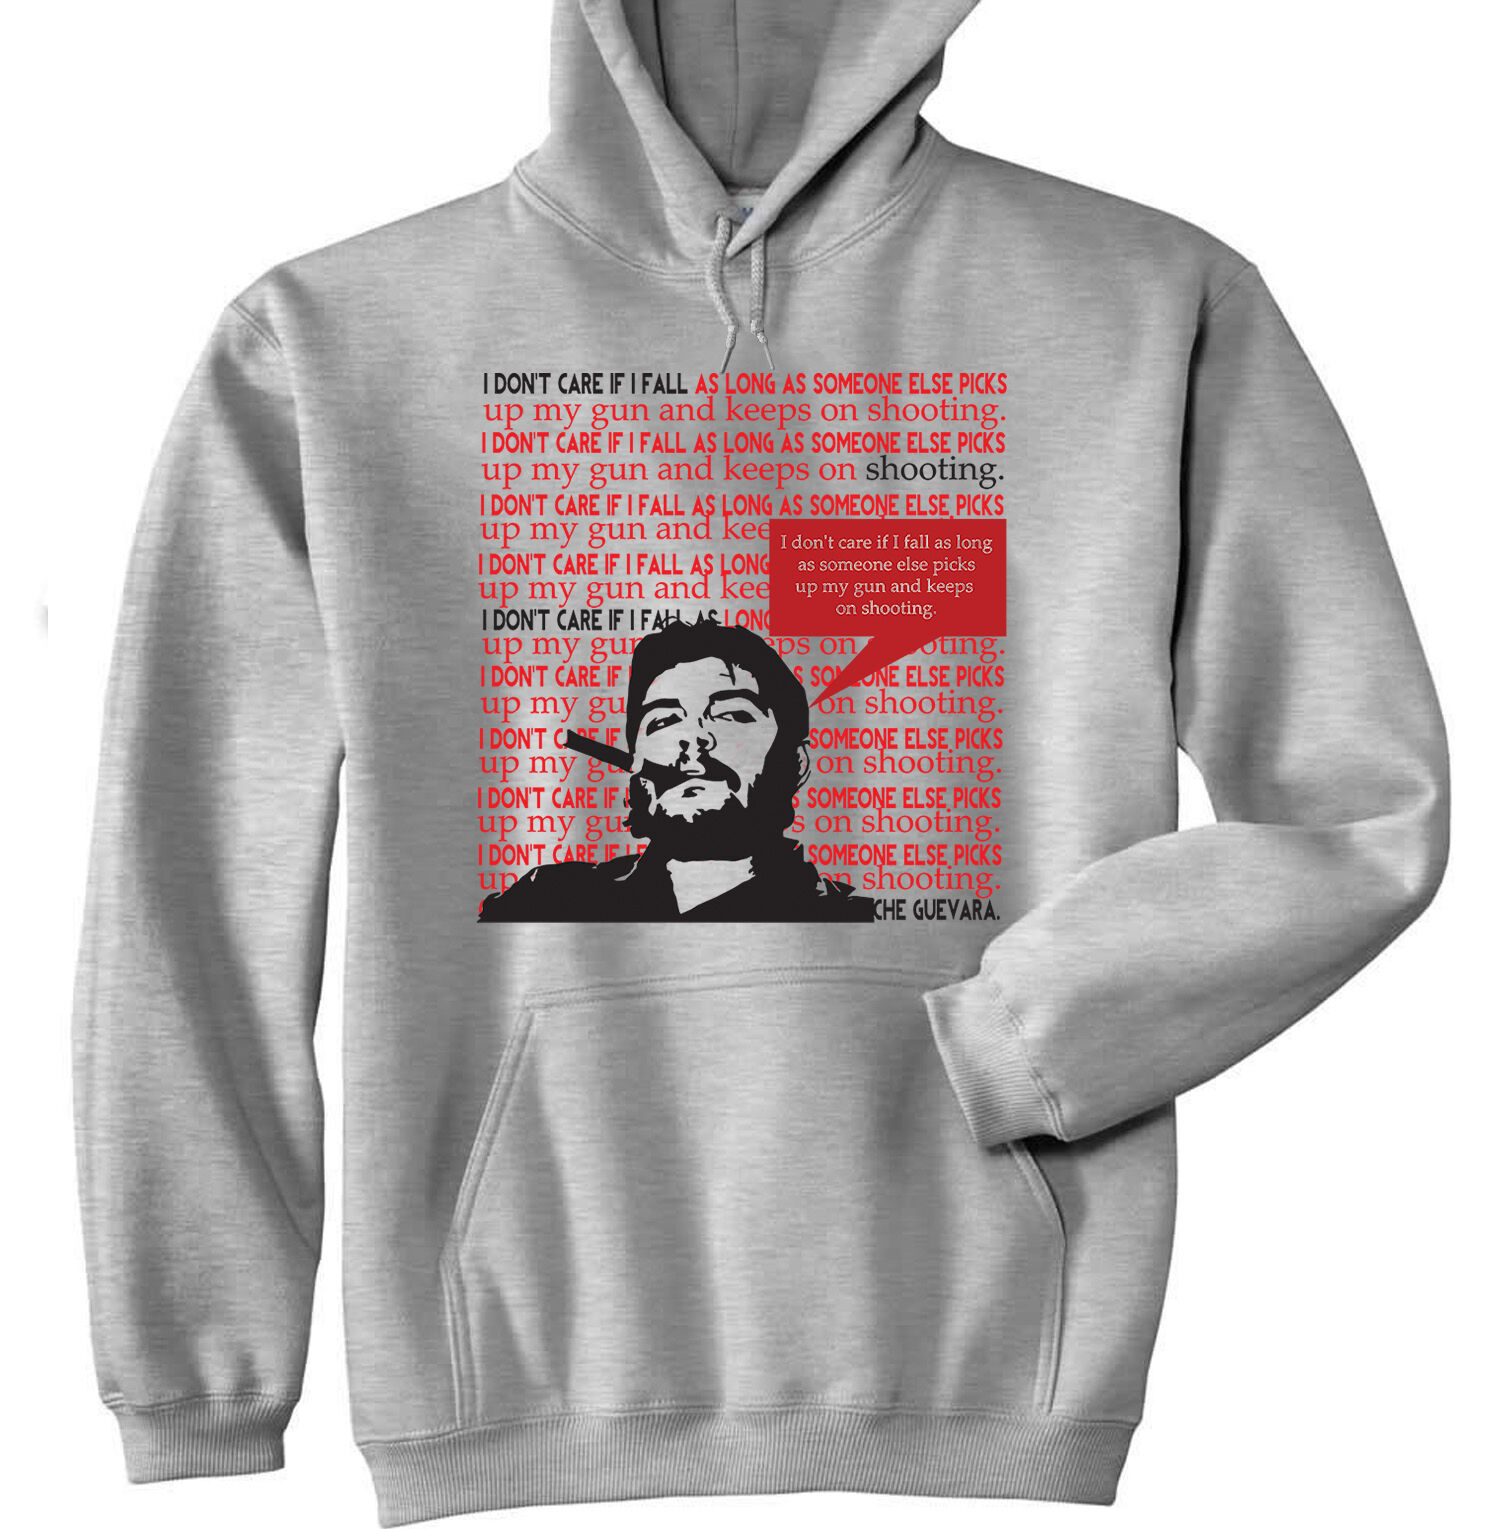 CHE GUEVARA I DO NOT CARE - NEW COTTON GREY HOODIE